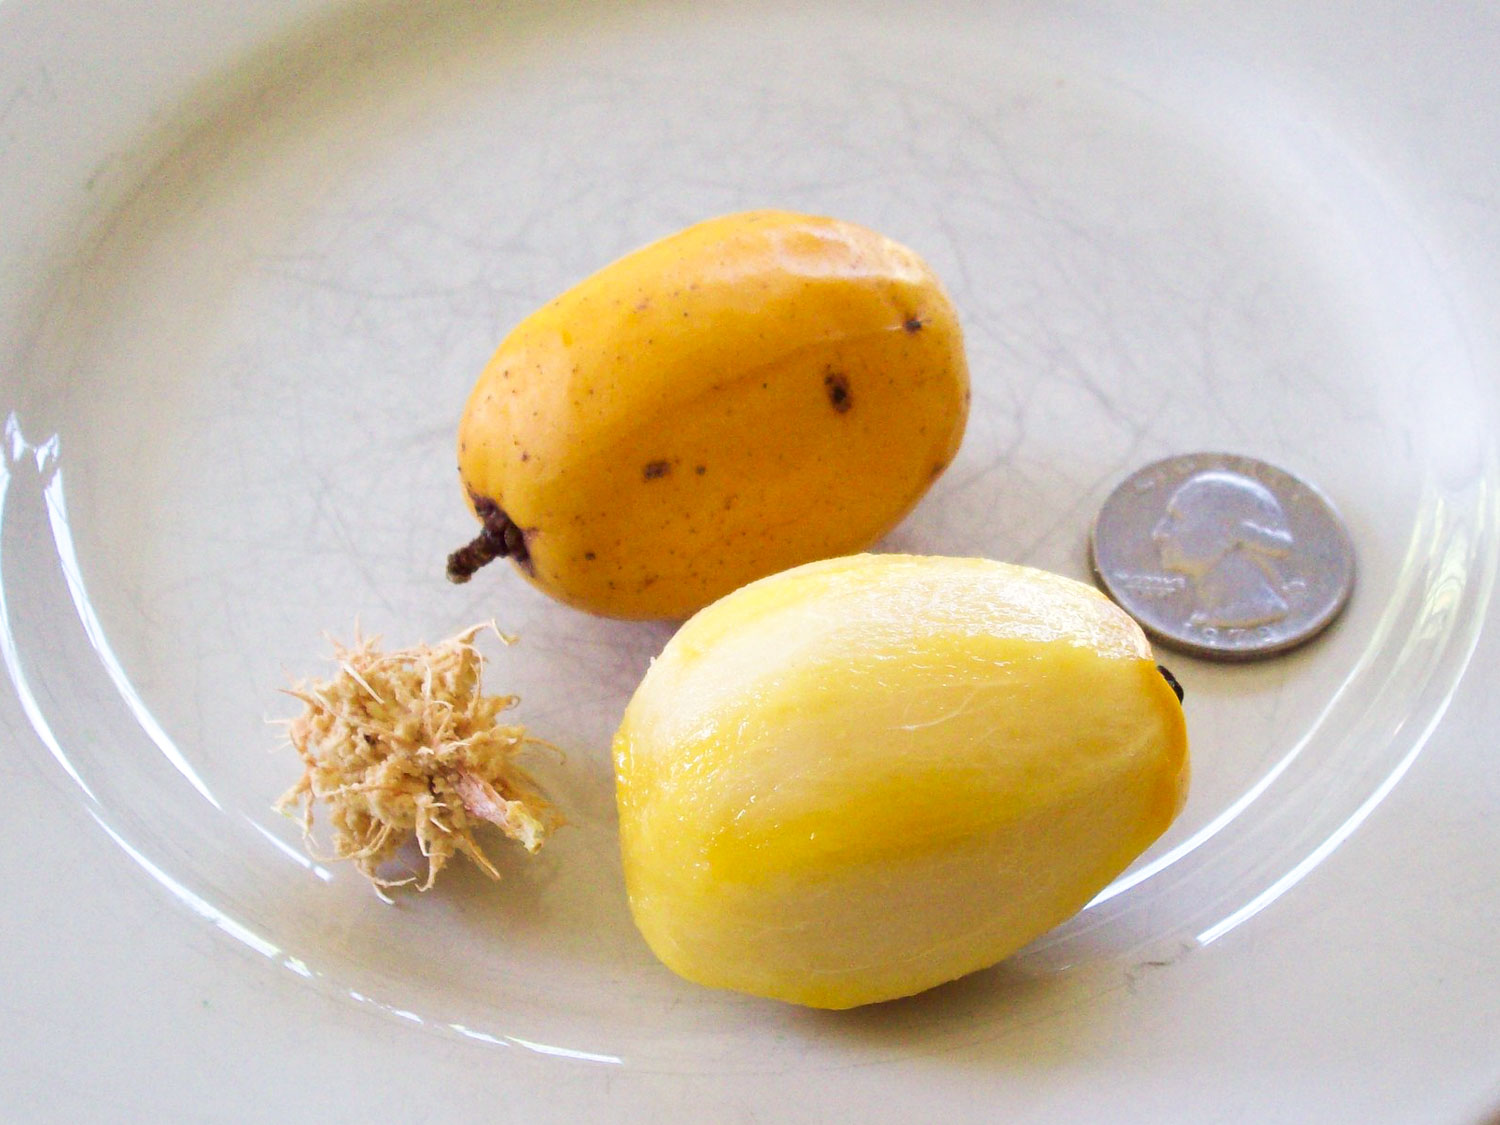 Jamaica fruit called june plums on a plate with a quarter as reference to show how small they are.